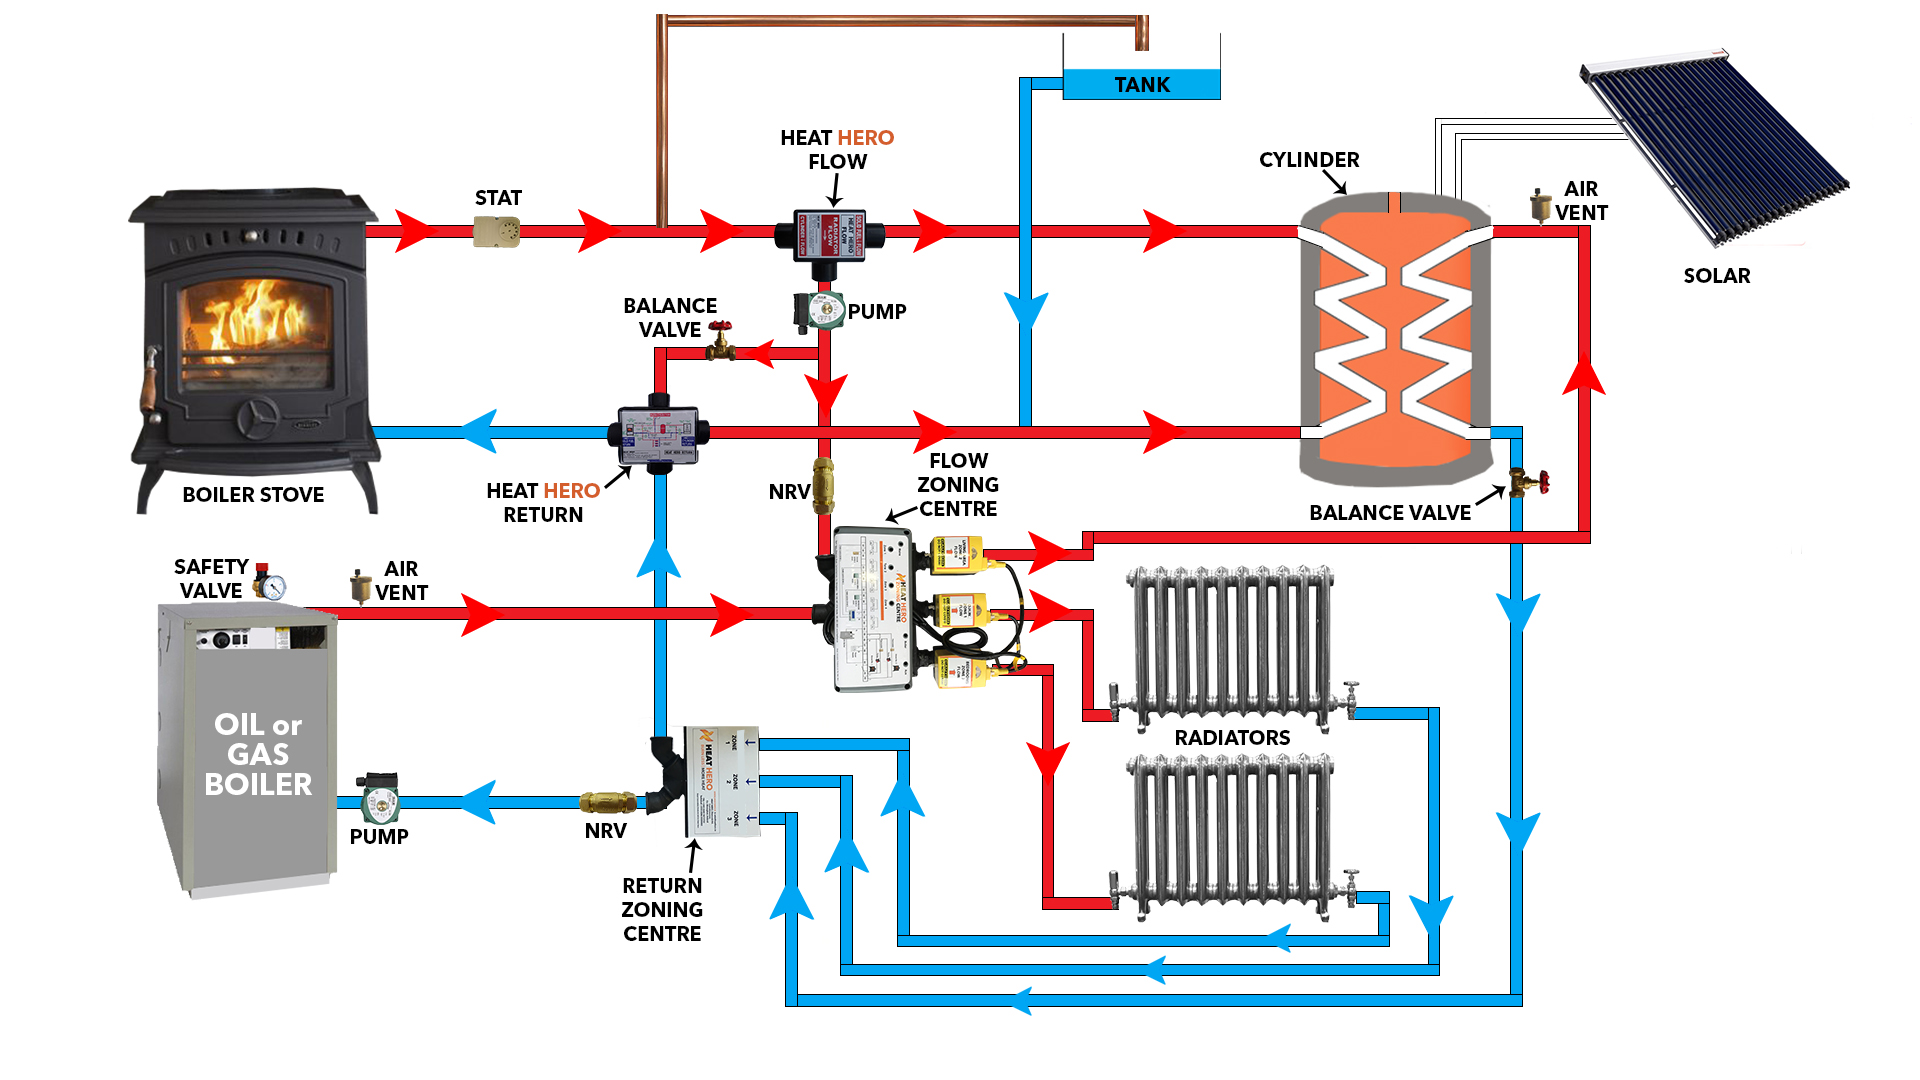 Block Diagram Ndb Simple Guide About Wiring Zoning Central Heating Images How To And